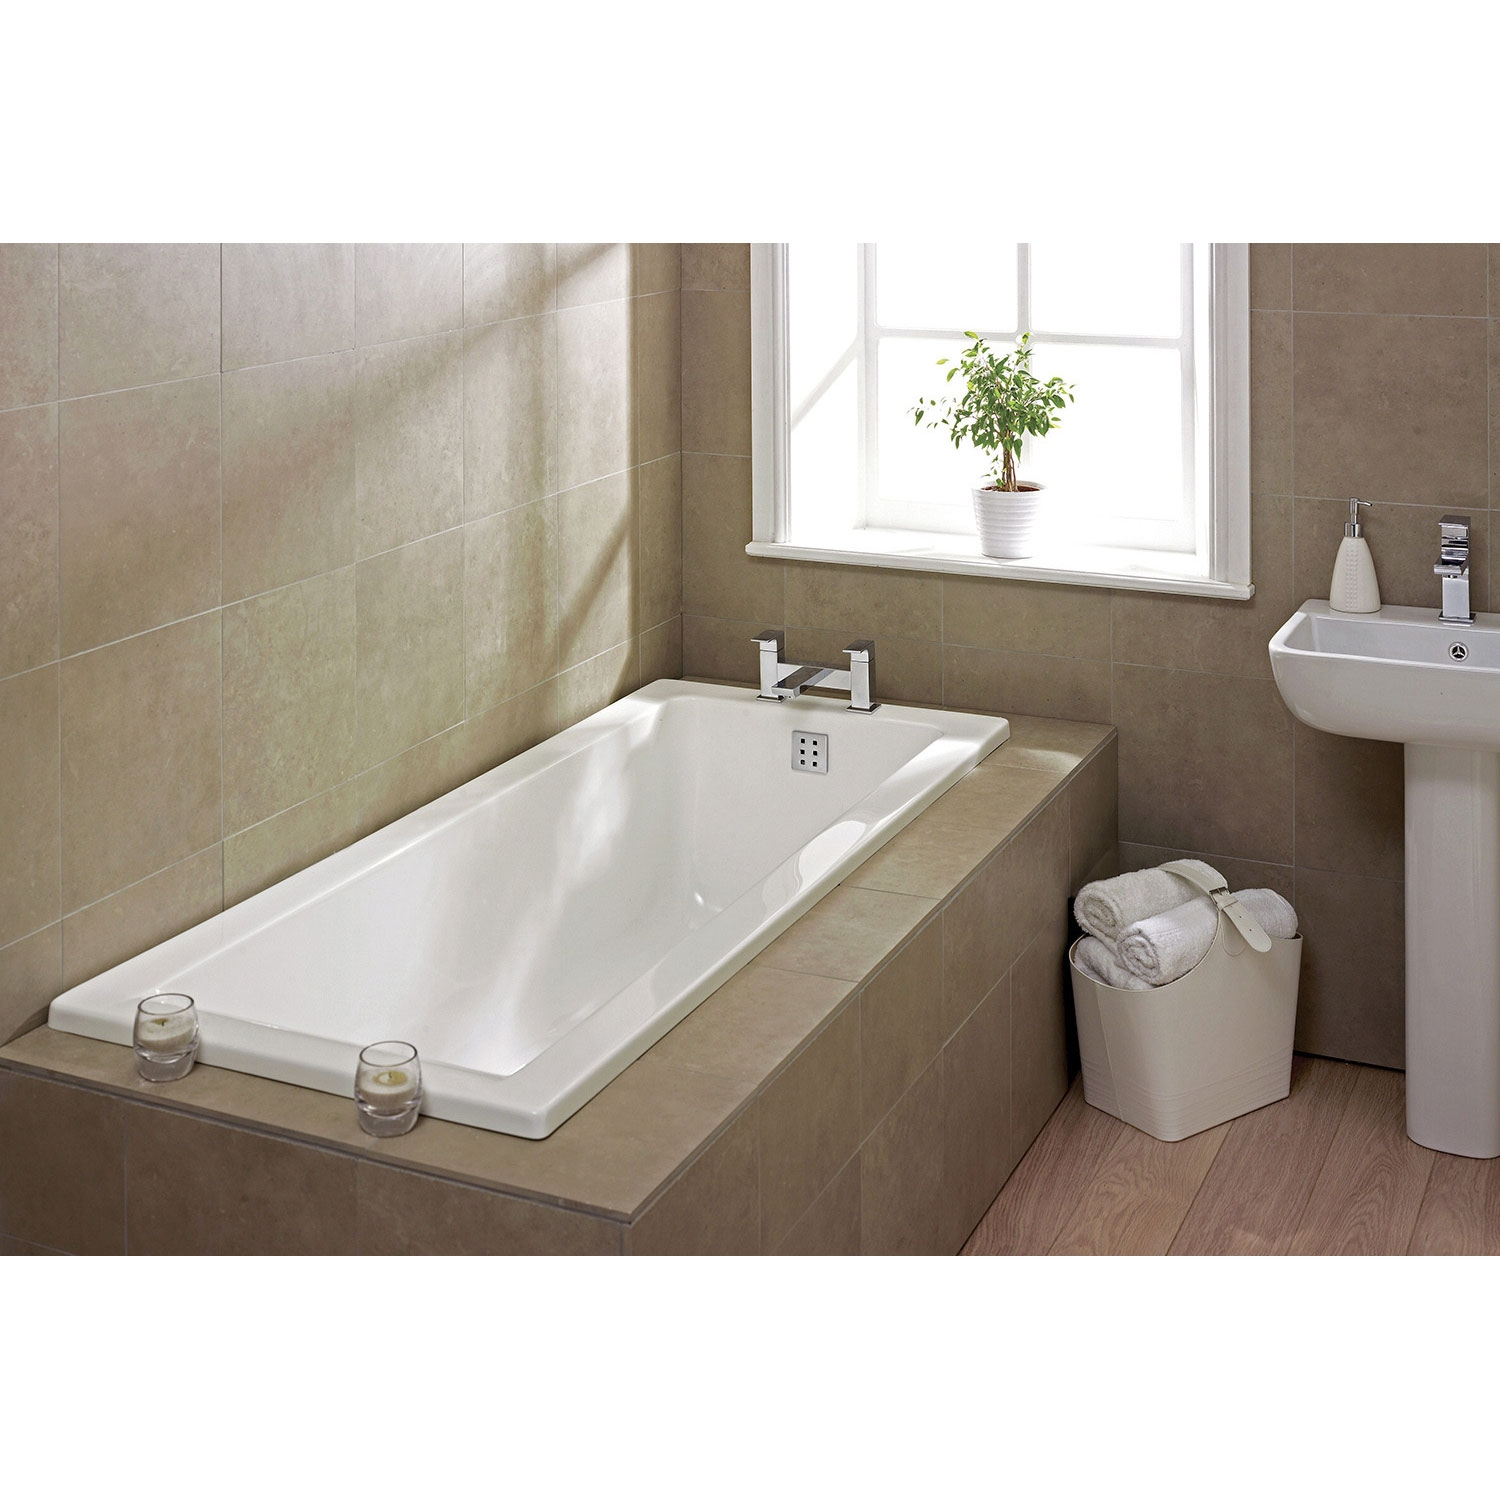 Verona Atlanta Single Ended Rectangular Tungstenite Bath 1600mm x 700mm - 0 Tap Hole